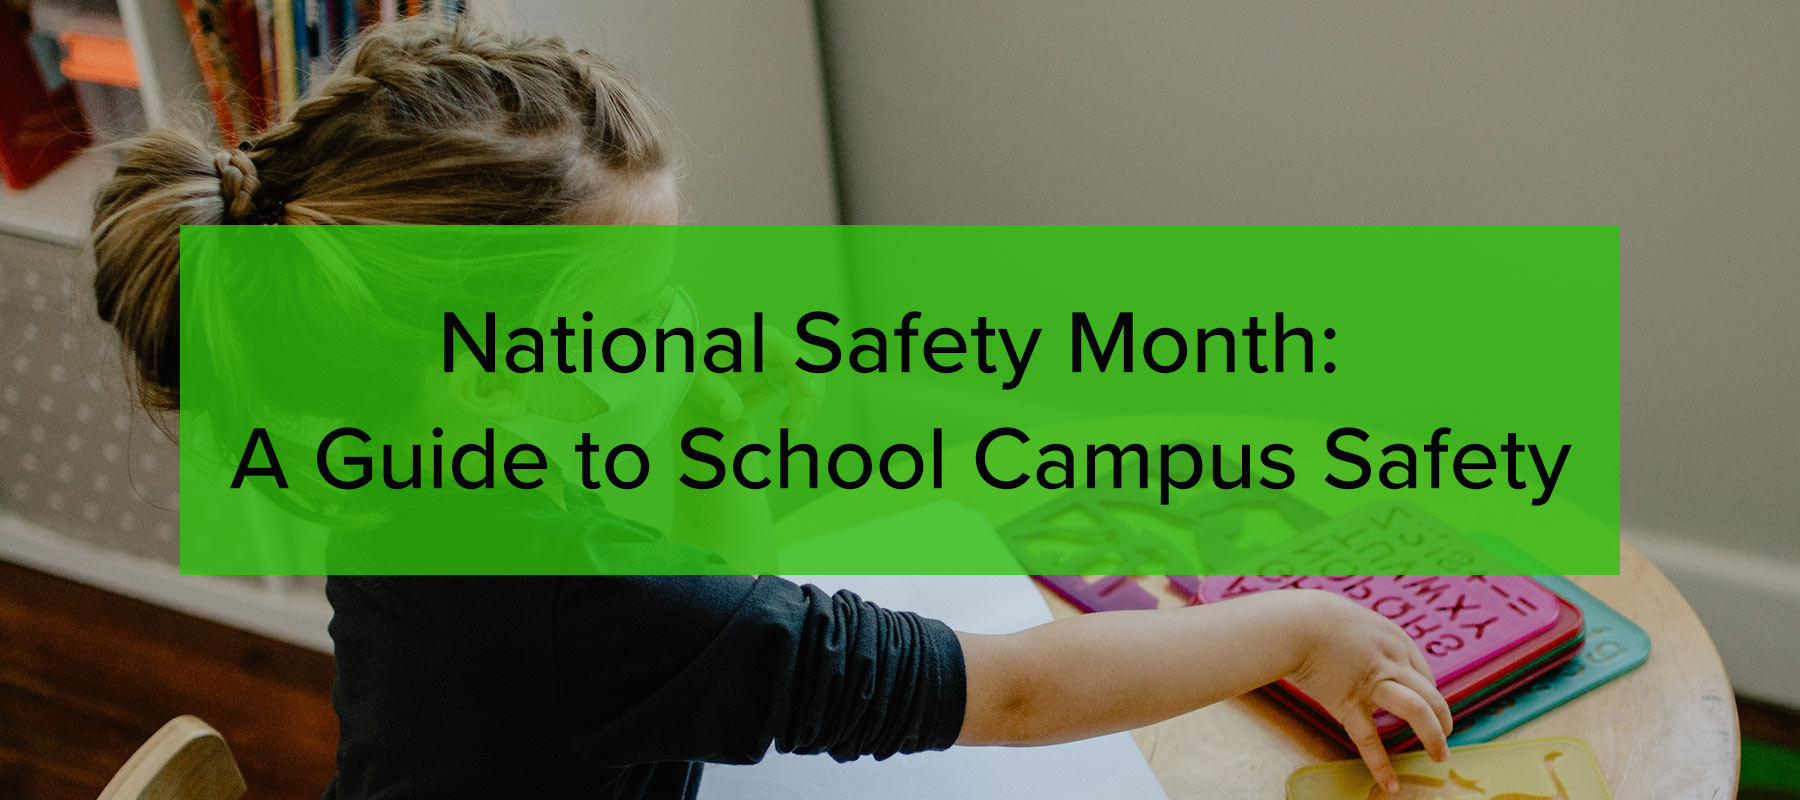 National Safety Month A Guide to School Campus Safety